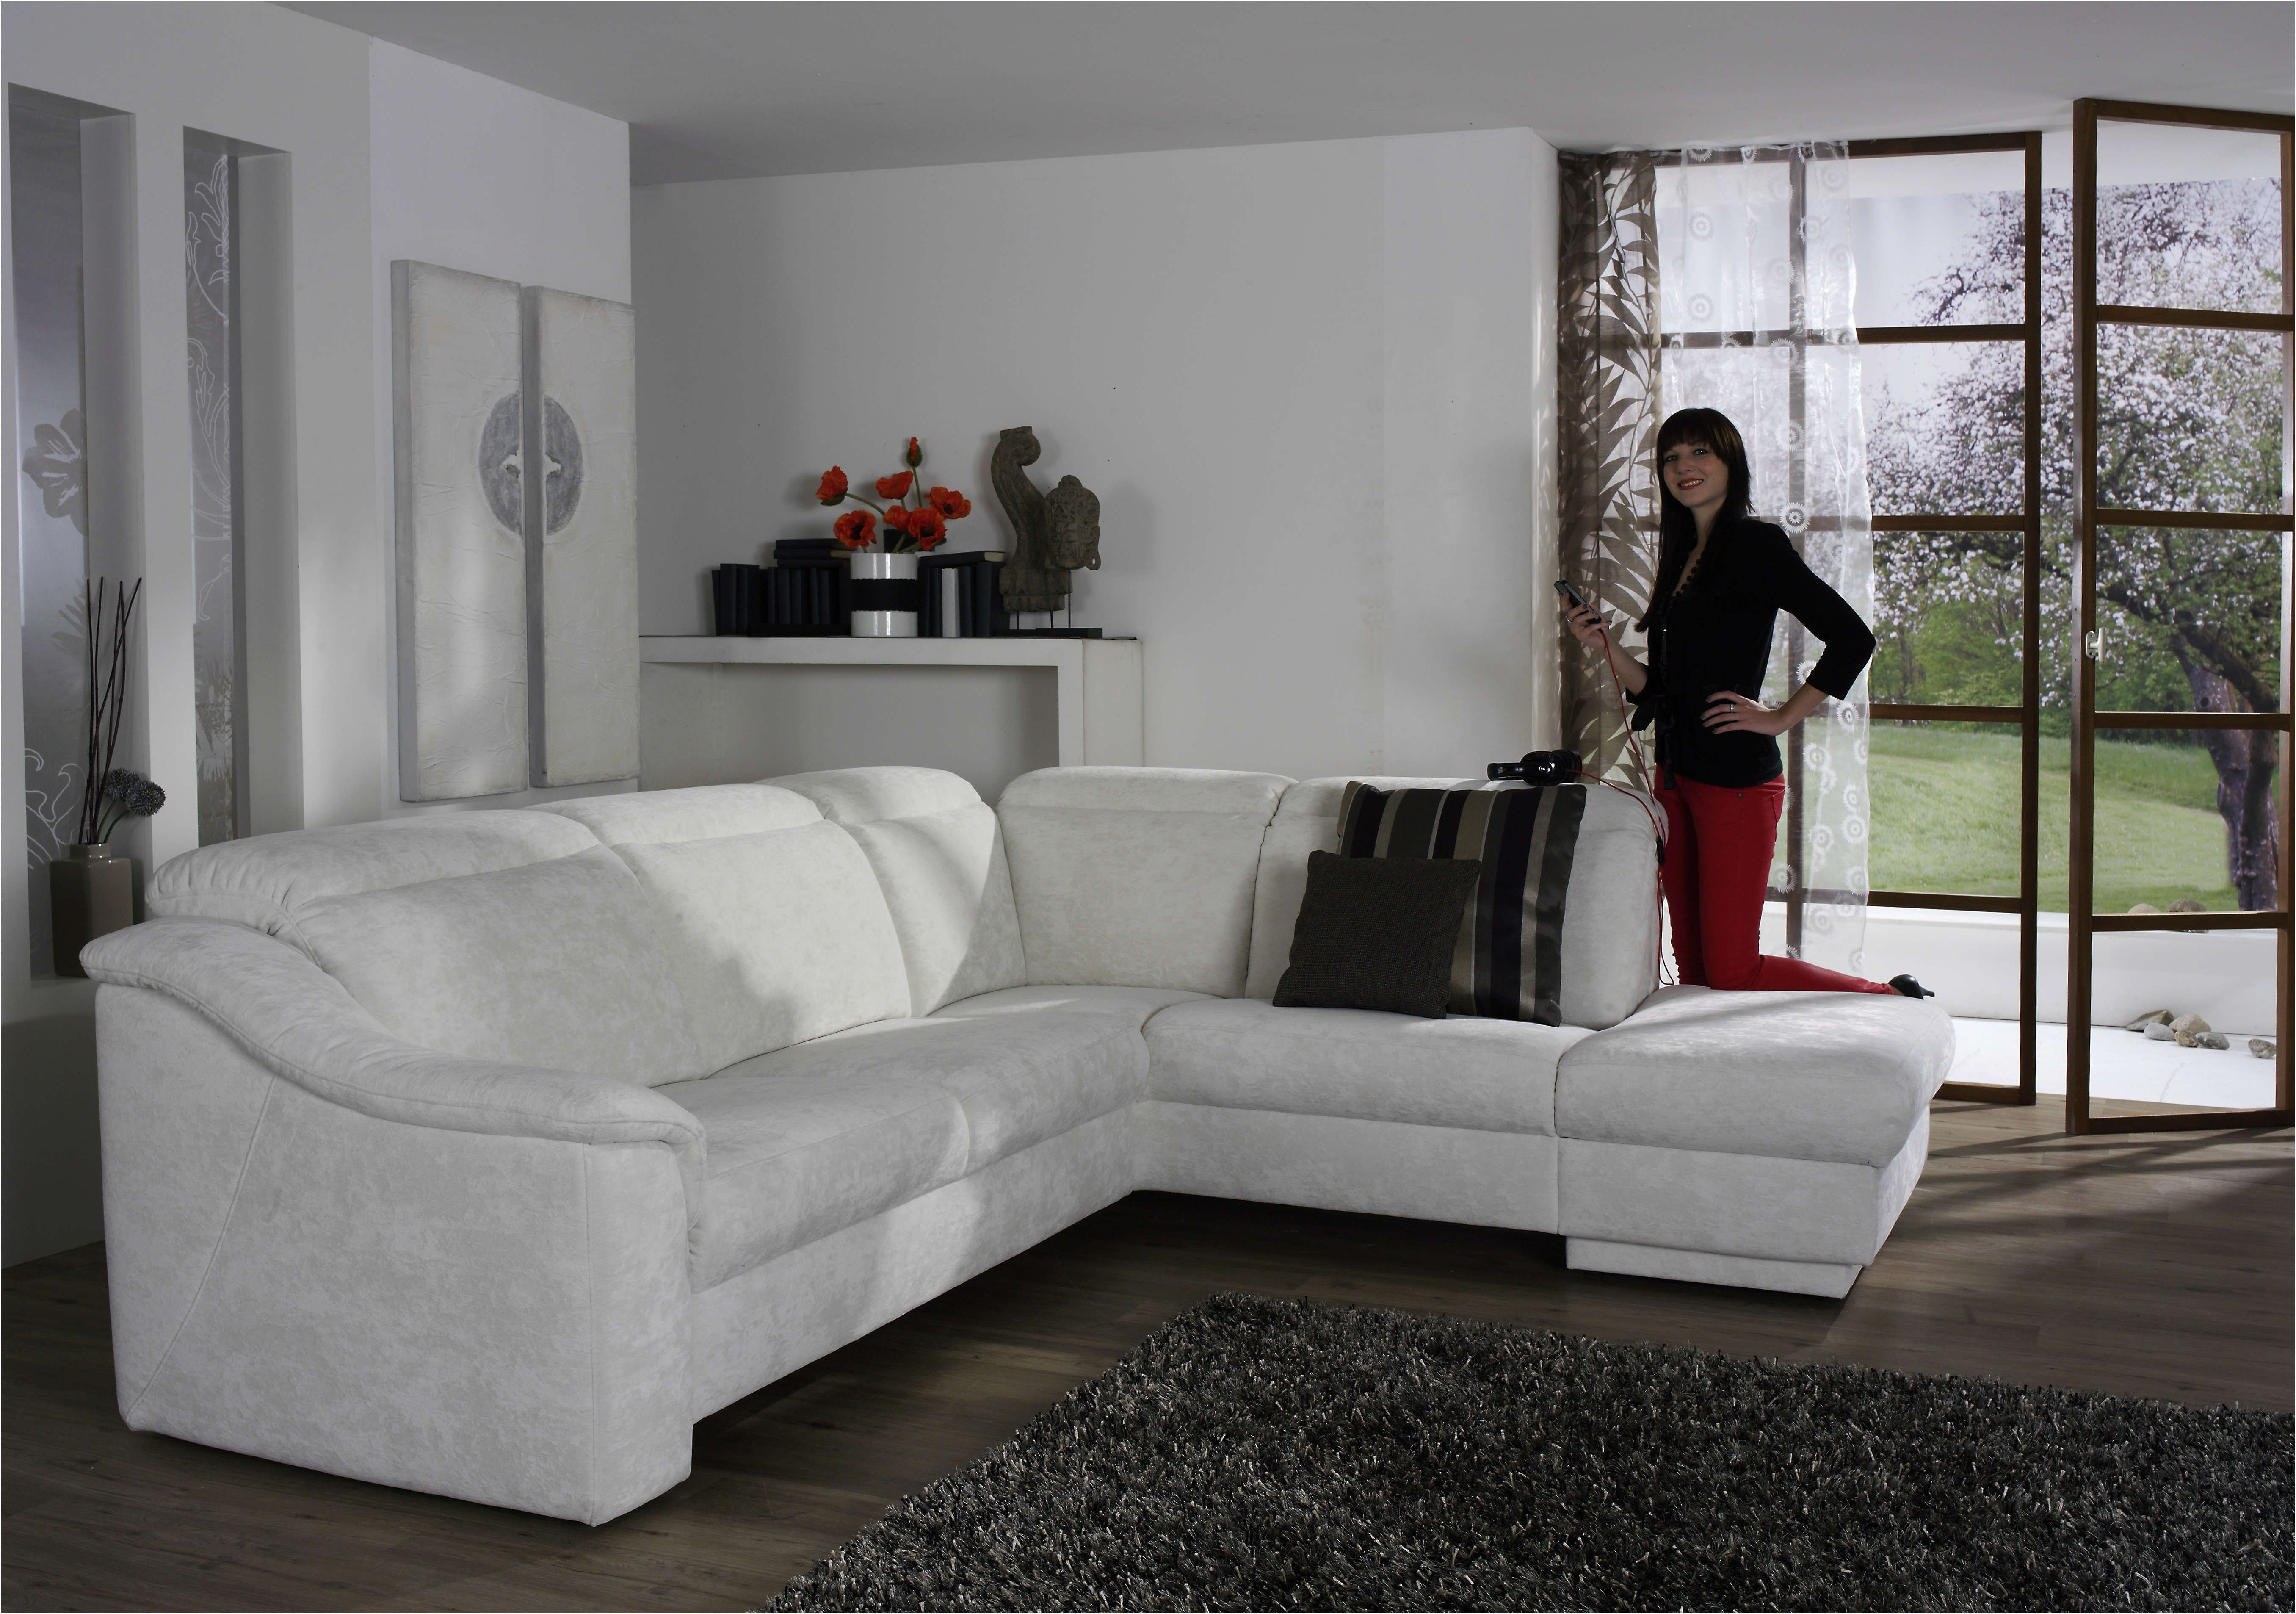 Xora Bettsofa Fabulous Xora Couch Couch Möbel Pinterest Couch